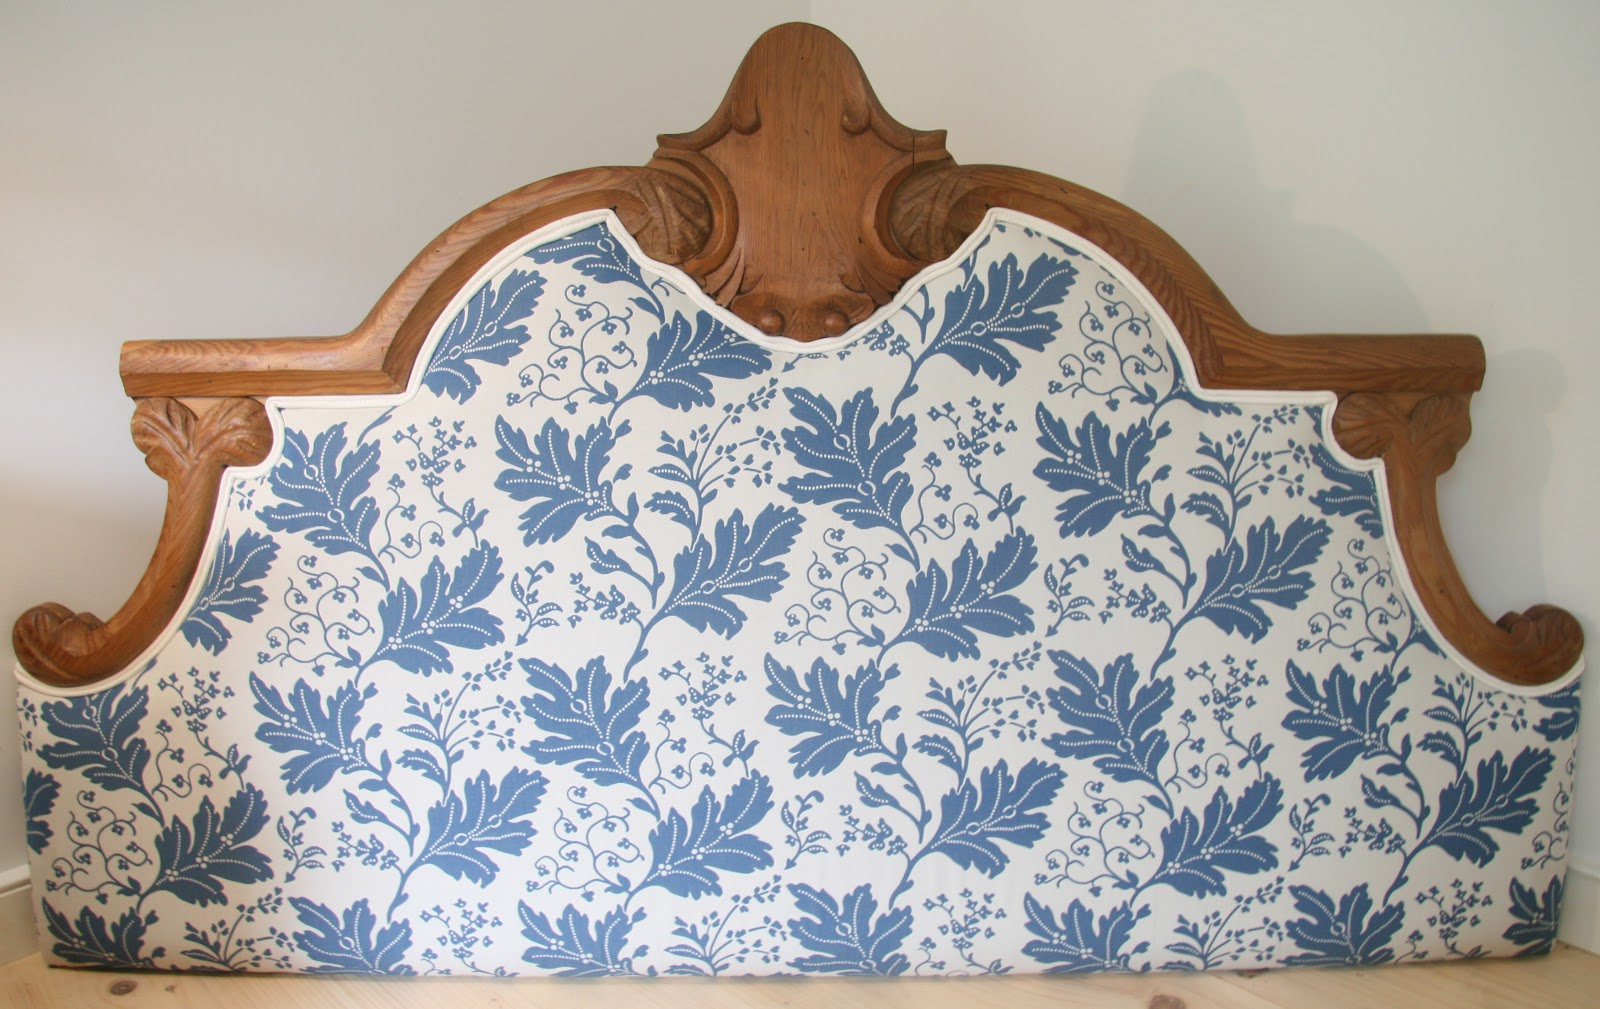 An Old Farm: Upholstering a Headboard